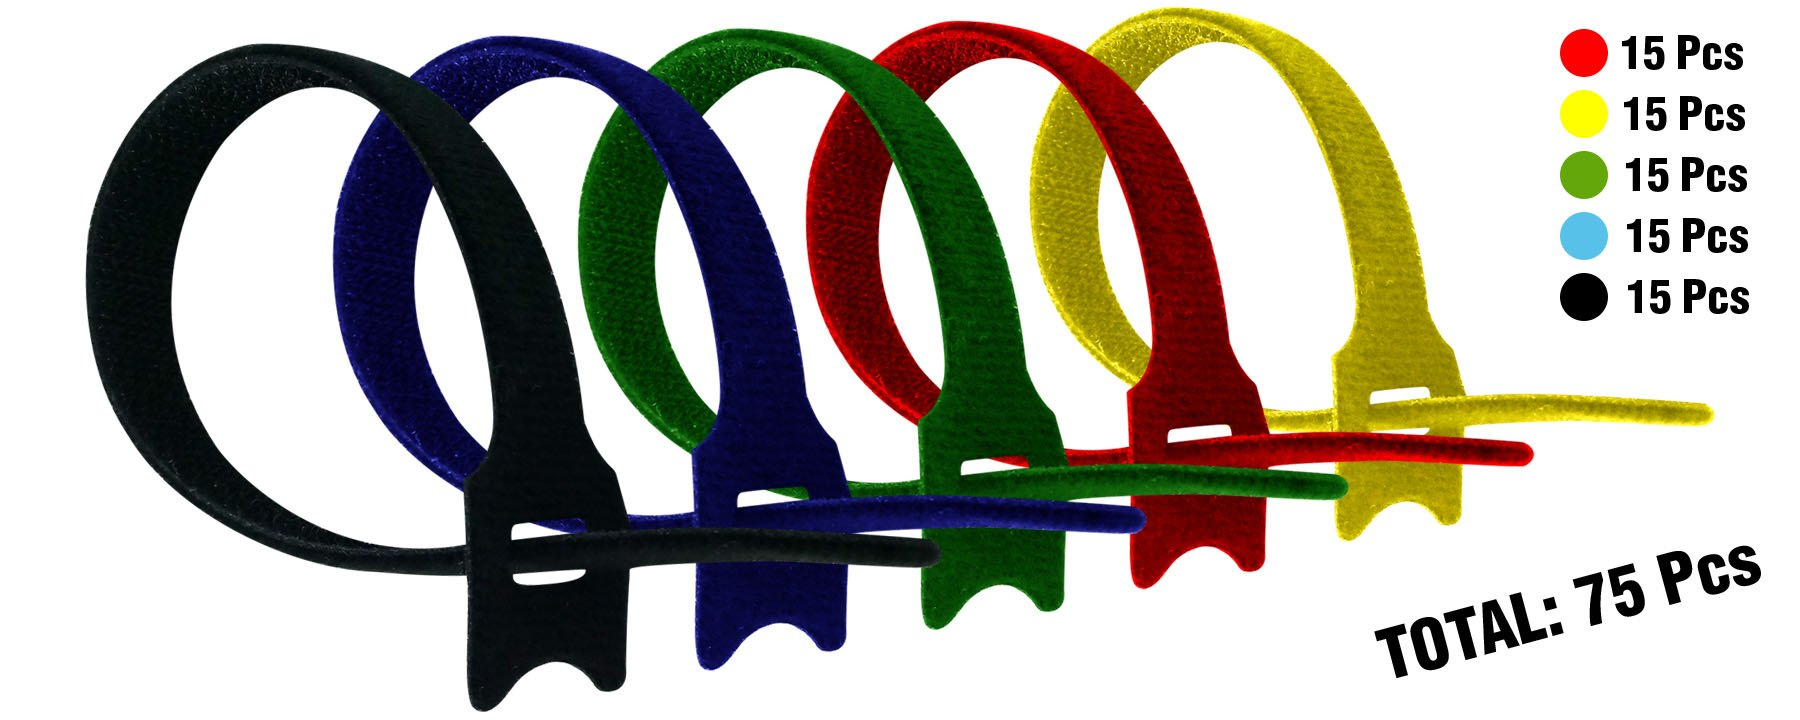 Cambridge ZipIts Self Gripping Reusable Fastening Hook & Loop Cable Ties, 75 pcs 8'' Long X 1/2'' Wide. 15 pcs each of Black, Blue, Green, Red, Yellow.